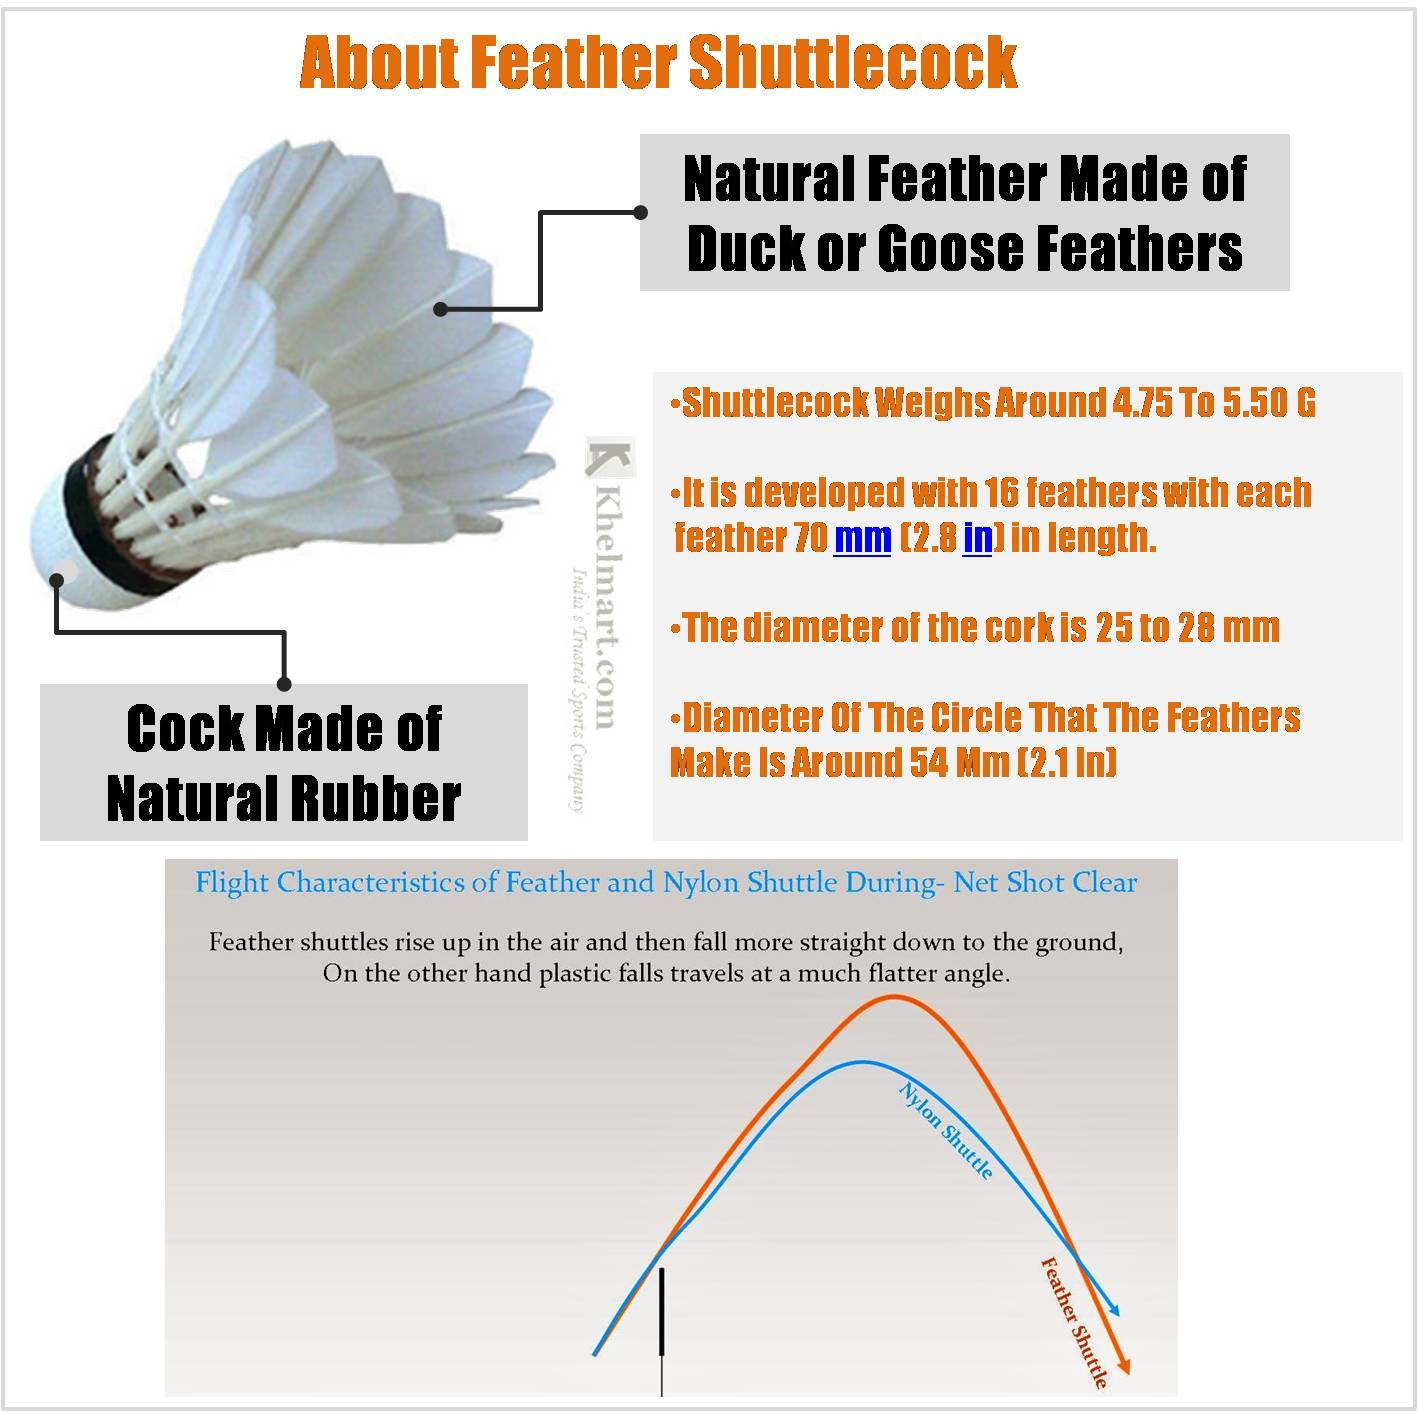 All_About_Feather_Shuttlecock_khelmart.jpg